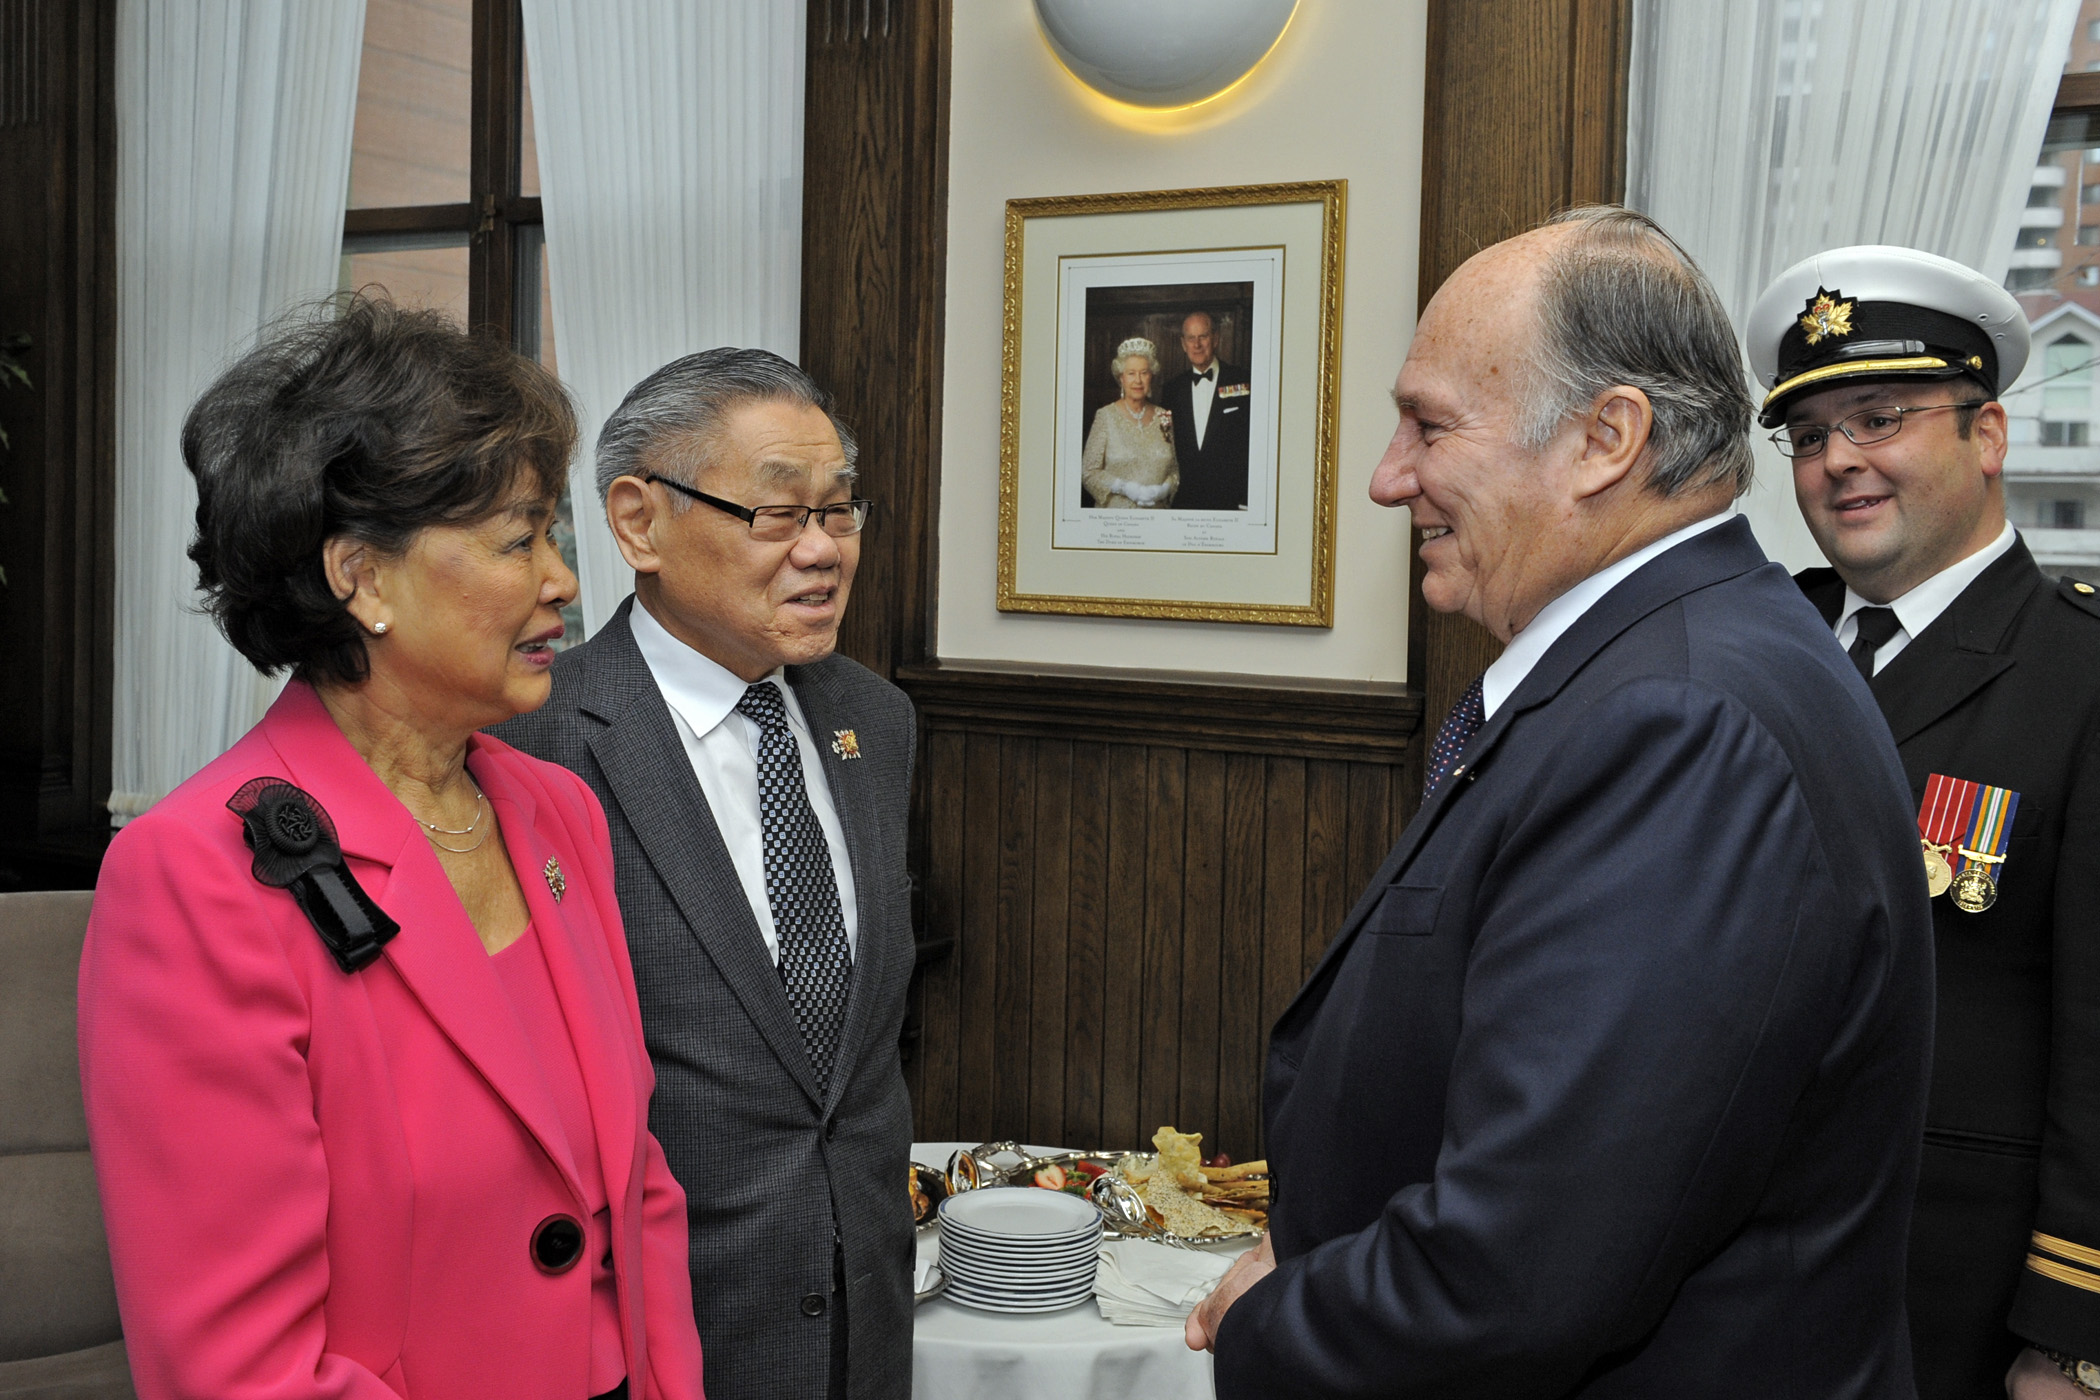 Mawlana Hazar Imam in discussion with the Honourable Norman L Kwong, Lieutenant Governor of Alberta, and his wife, Her Honour Mary Kwong. Photo: Gary Otte